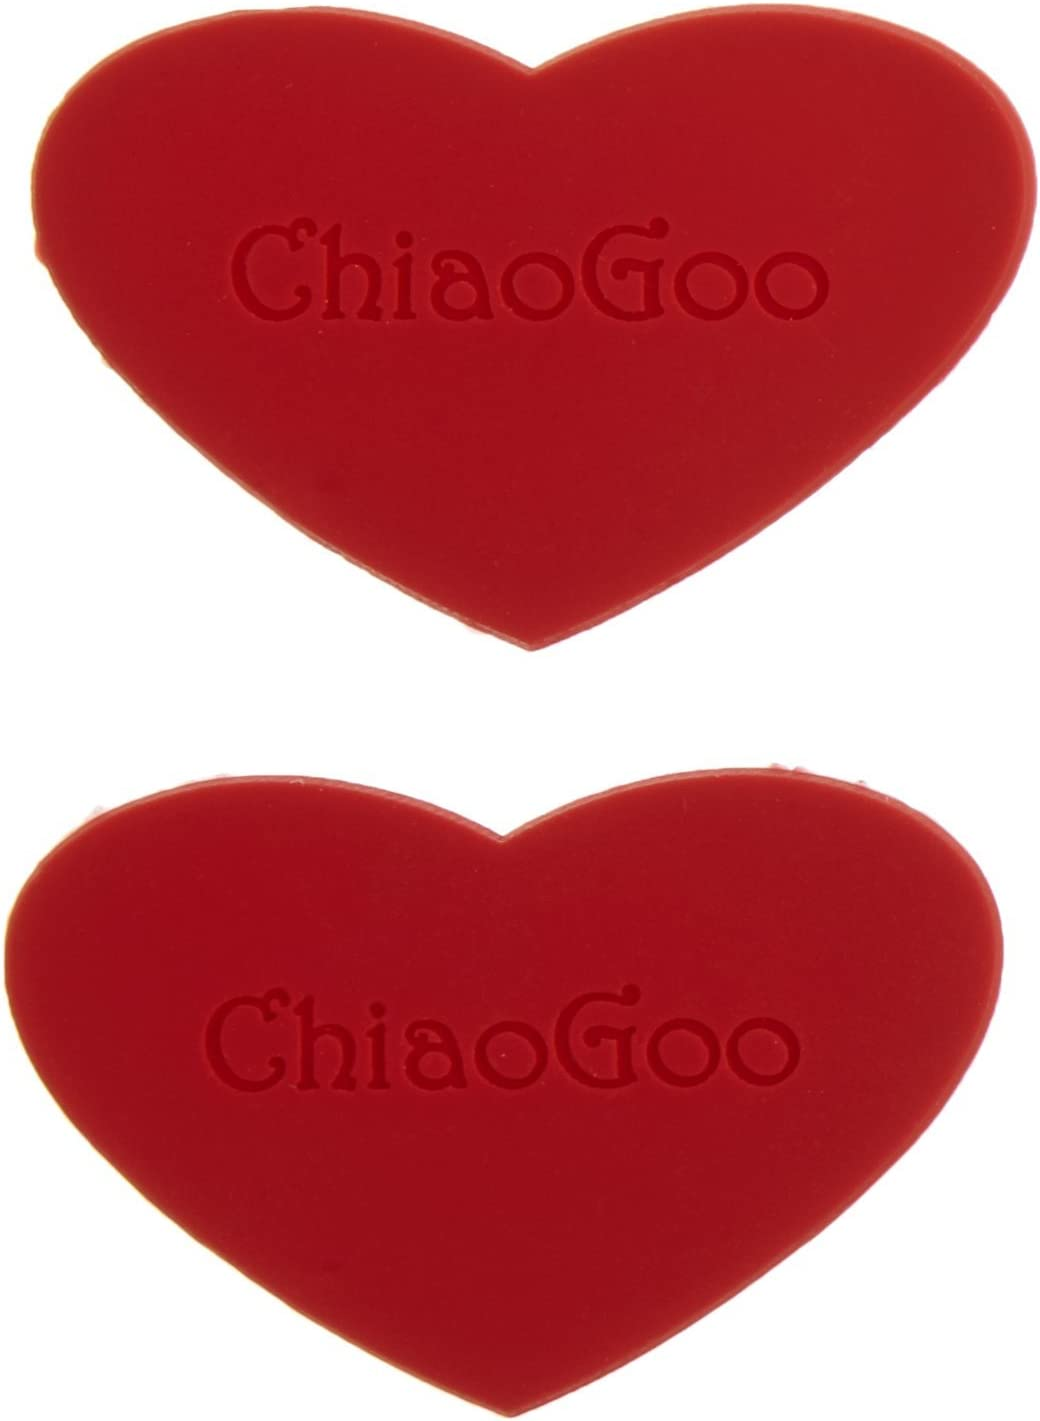 CHIAOGOO 2599 N/A Cable Rubber Grippers 2/Pkg-2